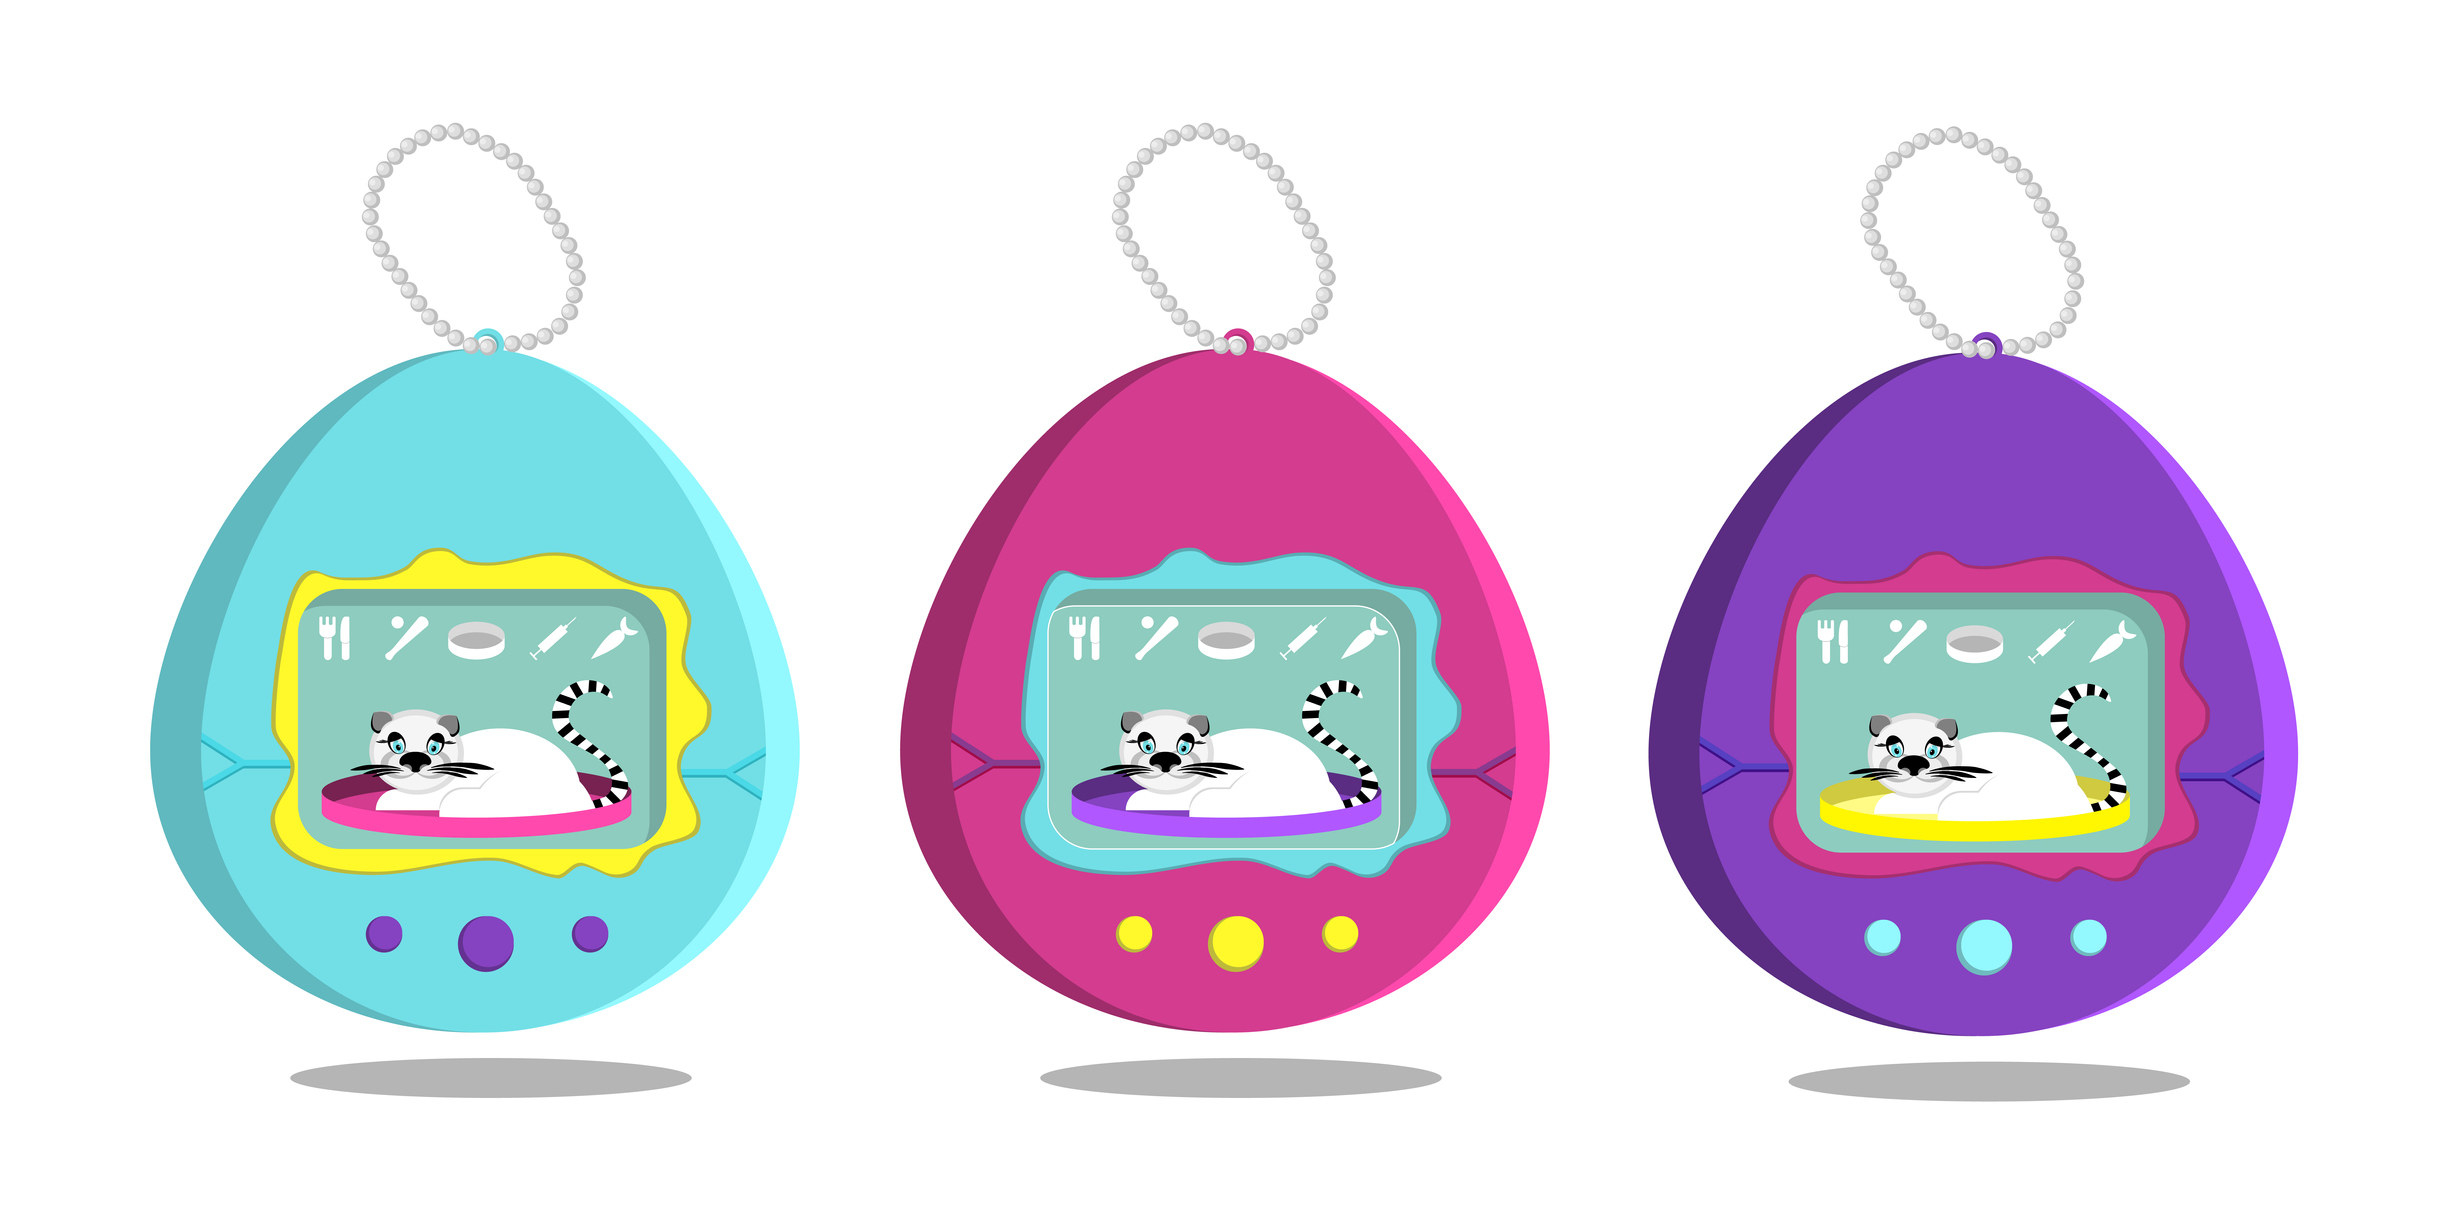 An illustration of three virtual pets from the '90s